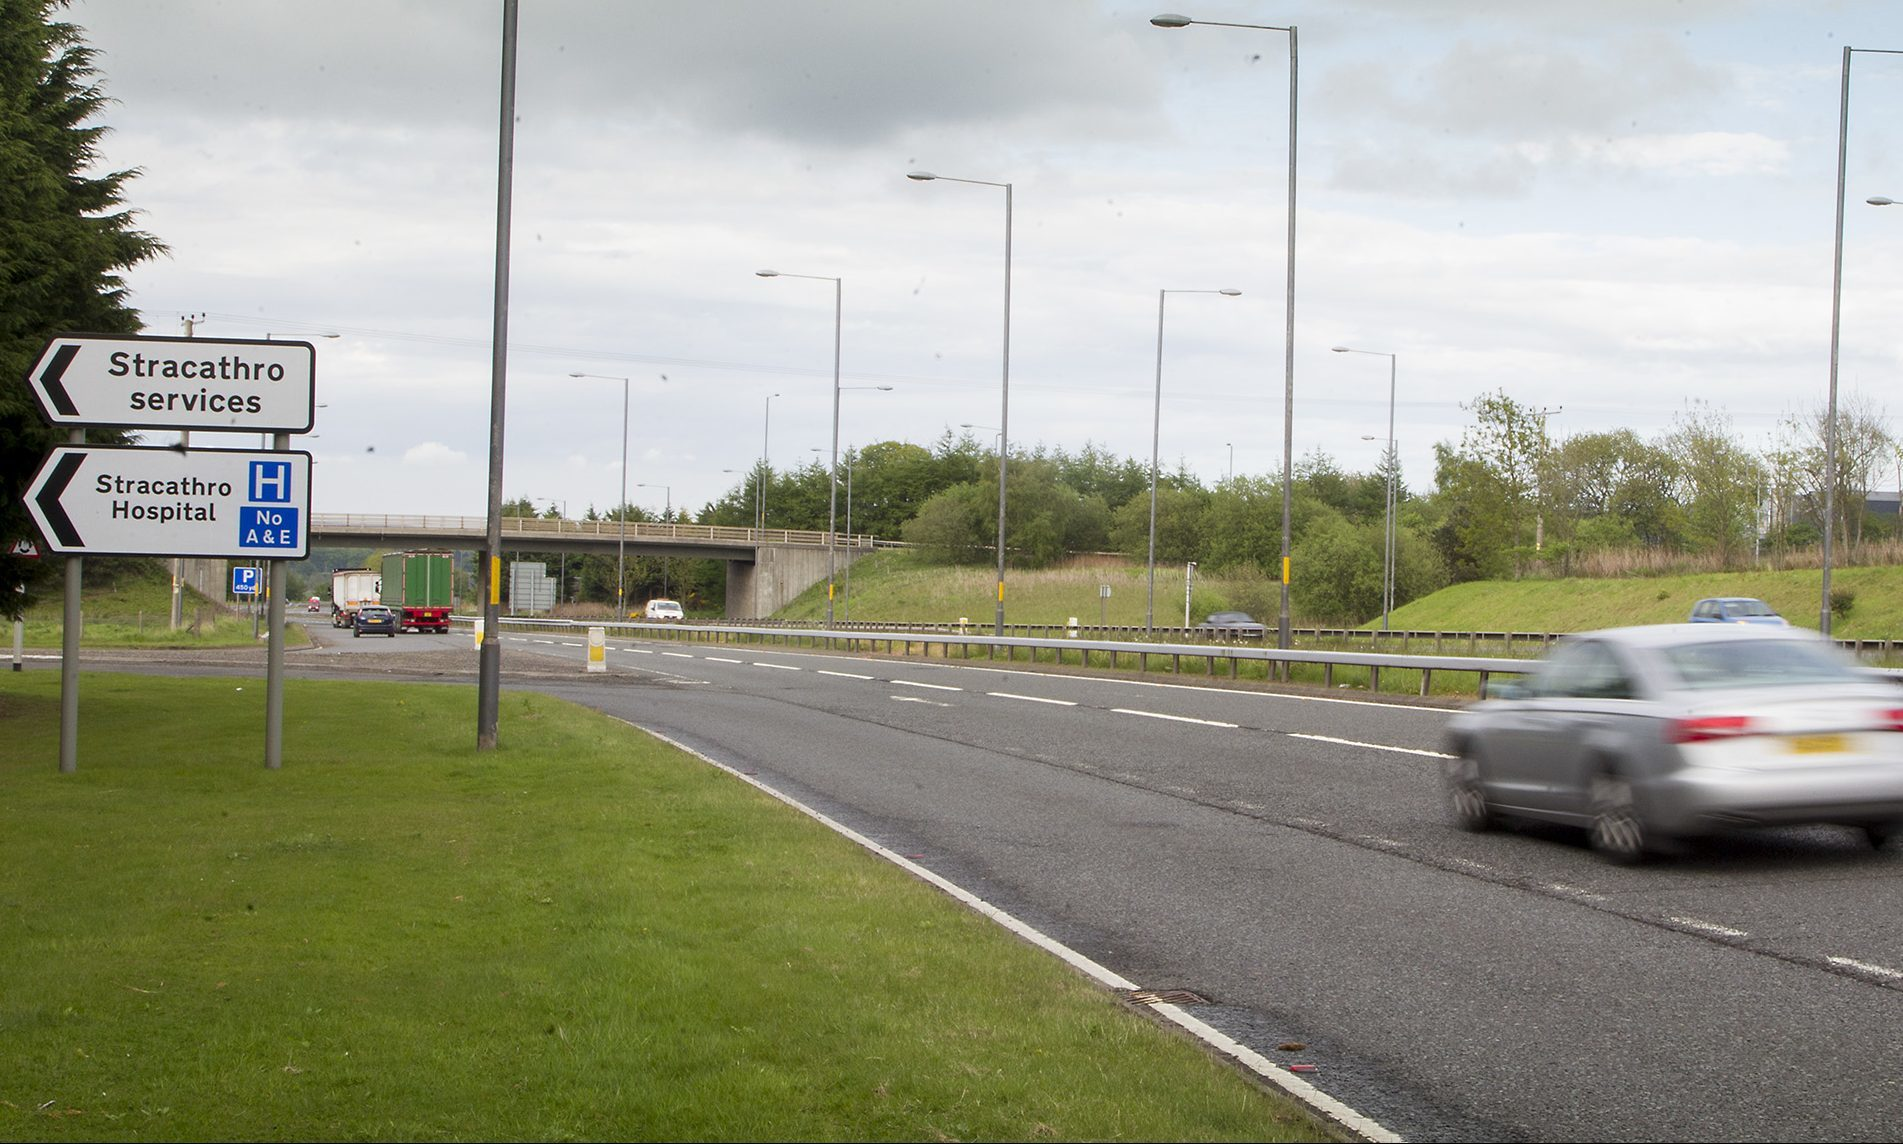 The road may join with the existing Brechin junction at Stracathro